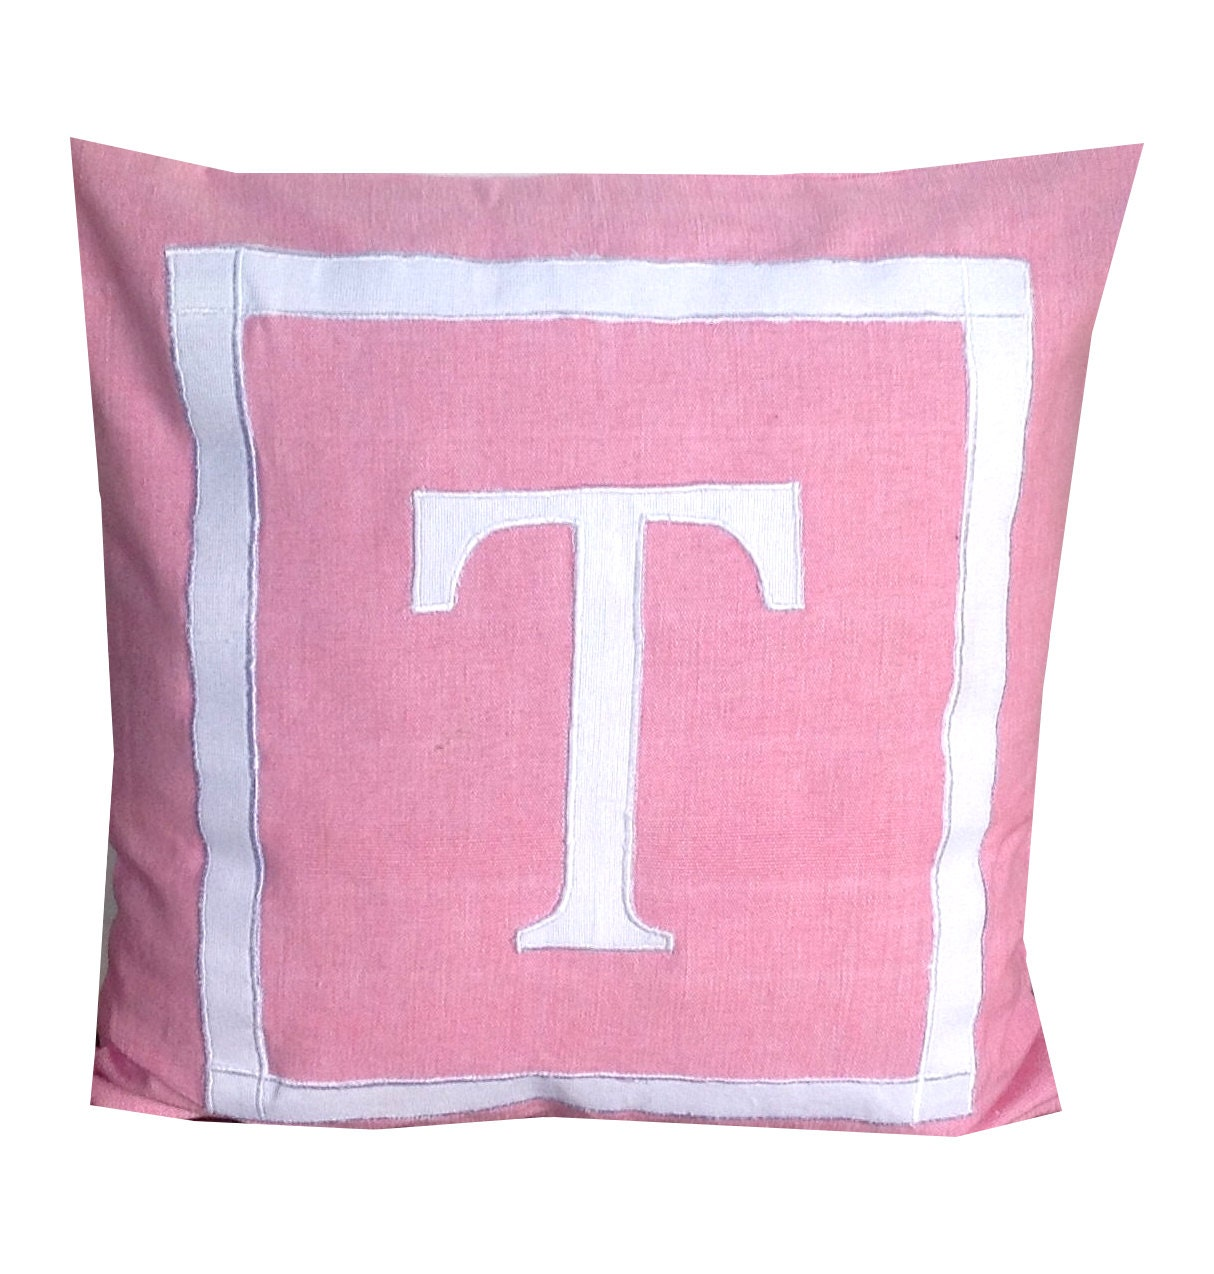 Throw Pillow For Nursery : 30% OFF Monogram Nursery pillows Pink Throw Pillows Nursery